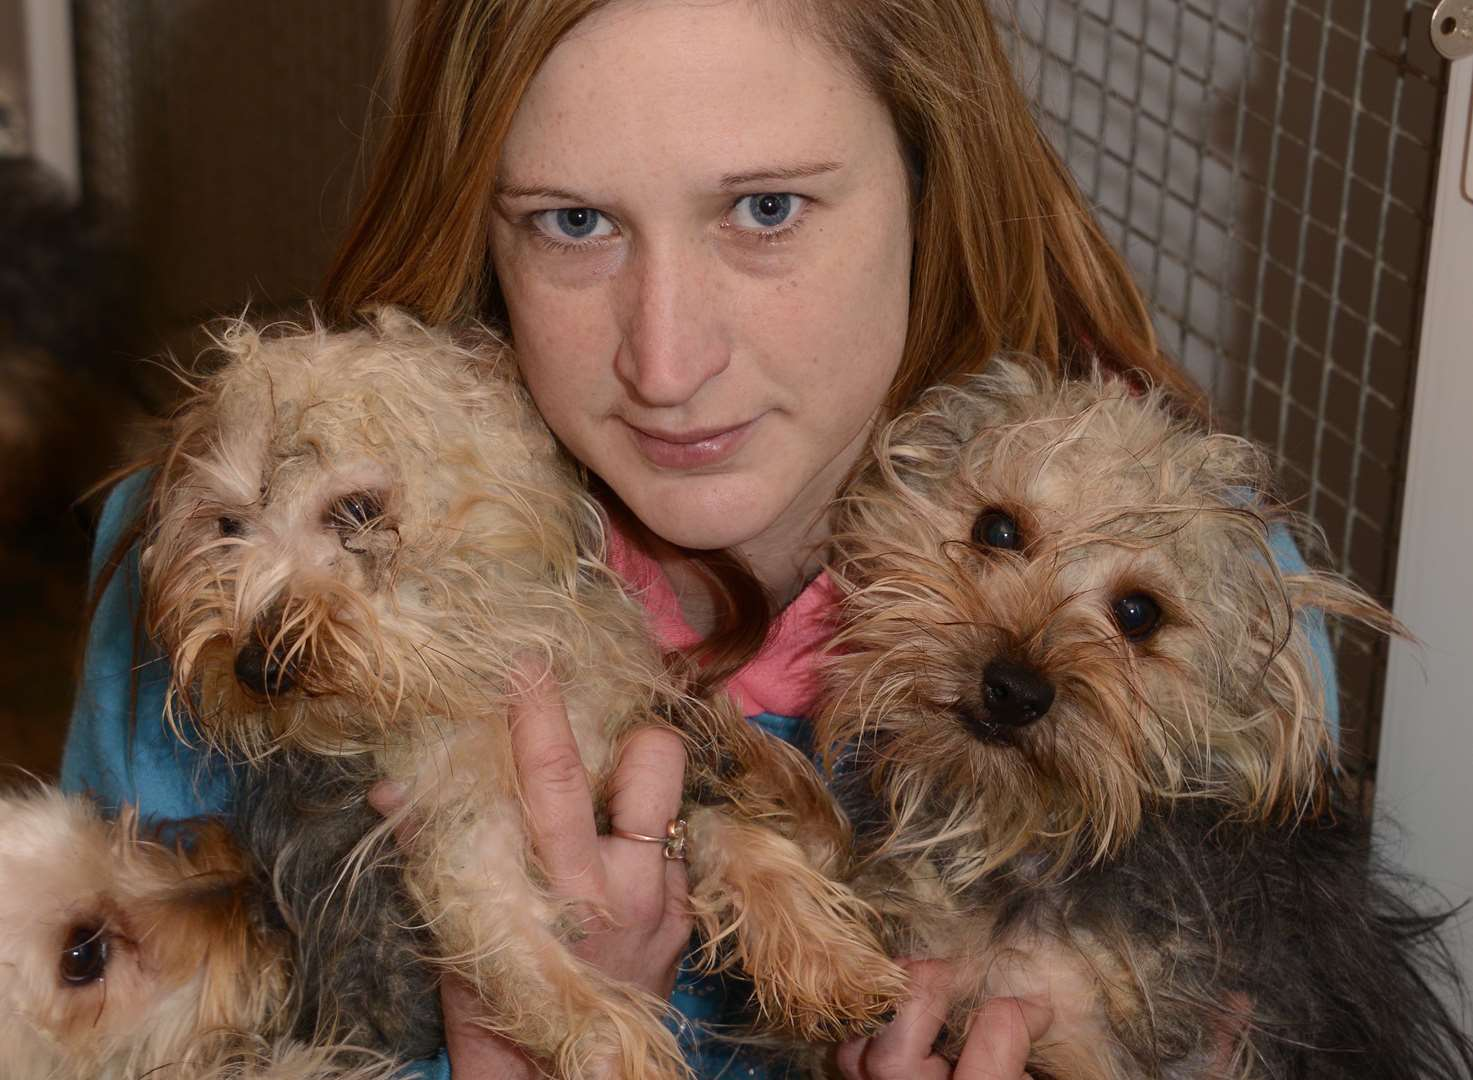 Woman risked jail for dogs she thought would die